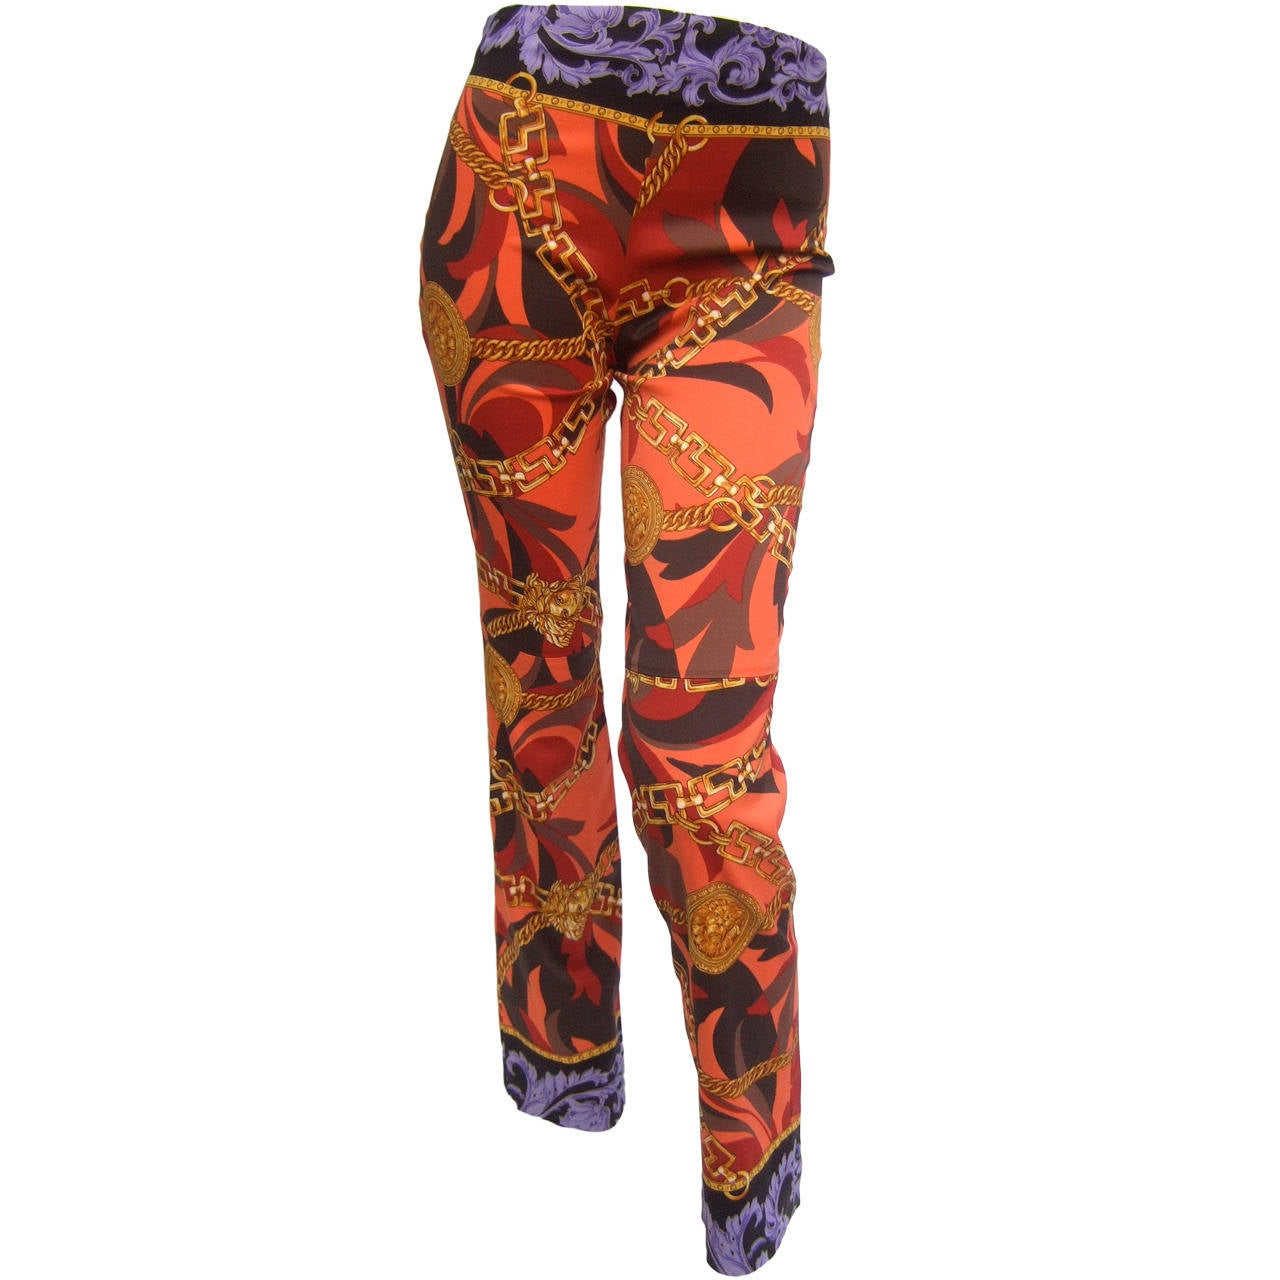 Versace Iconic Medusa Graphic Print Stretch Jeans Size 28 For Sale